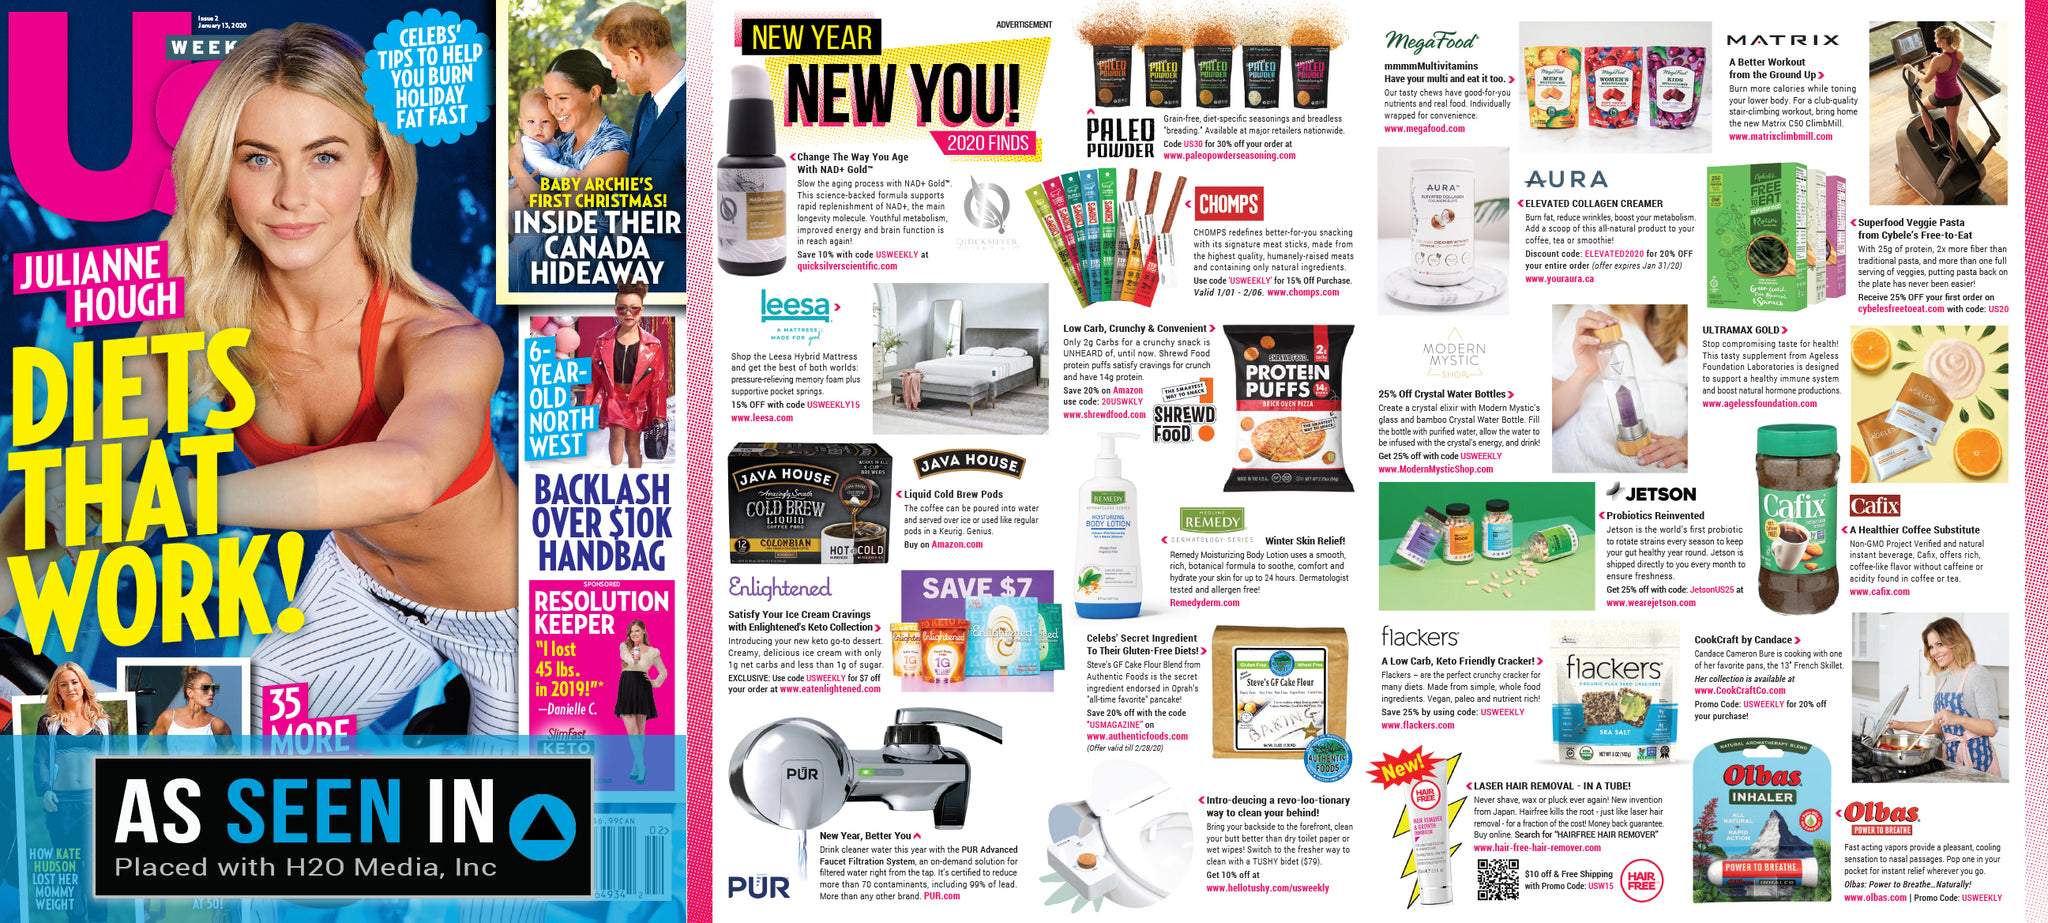 US Weekly Magazine Features AURA Nutrition Elevated Collagen Creamer